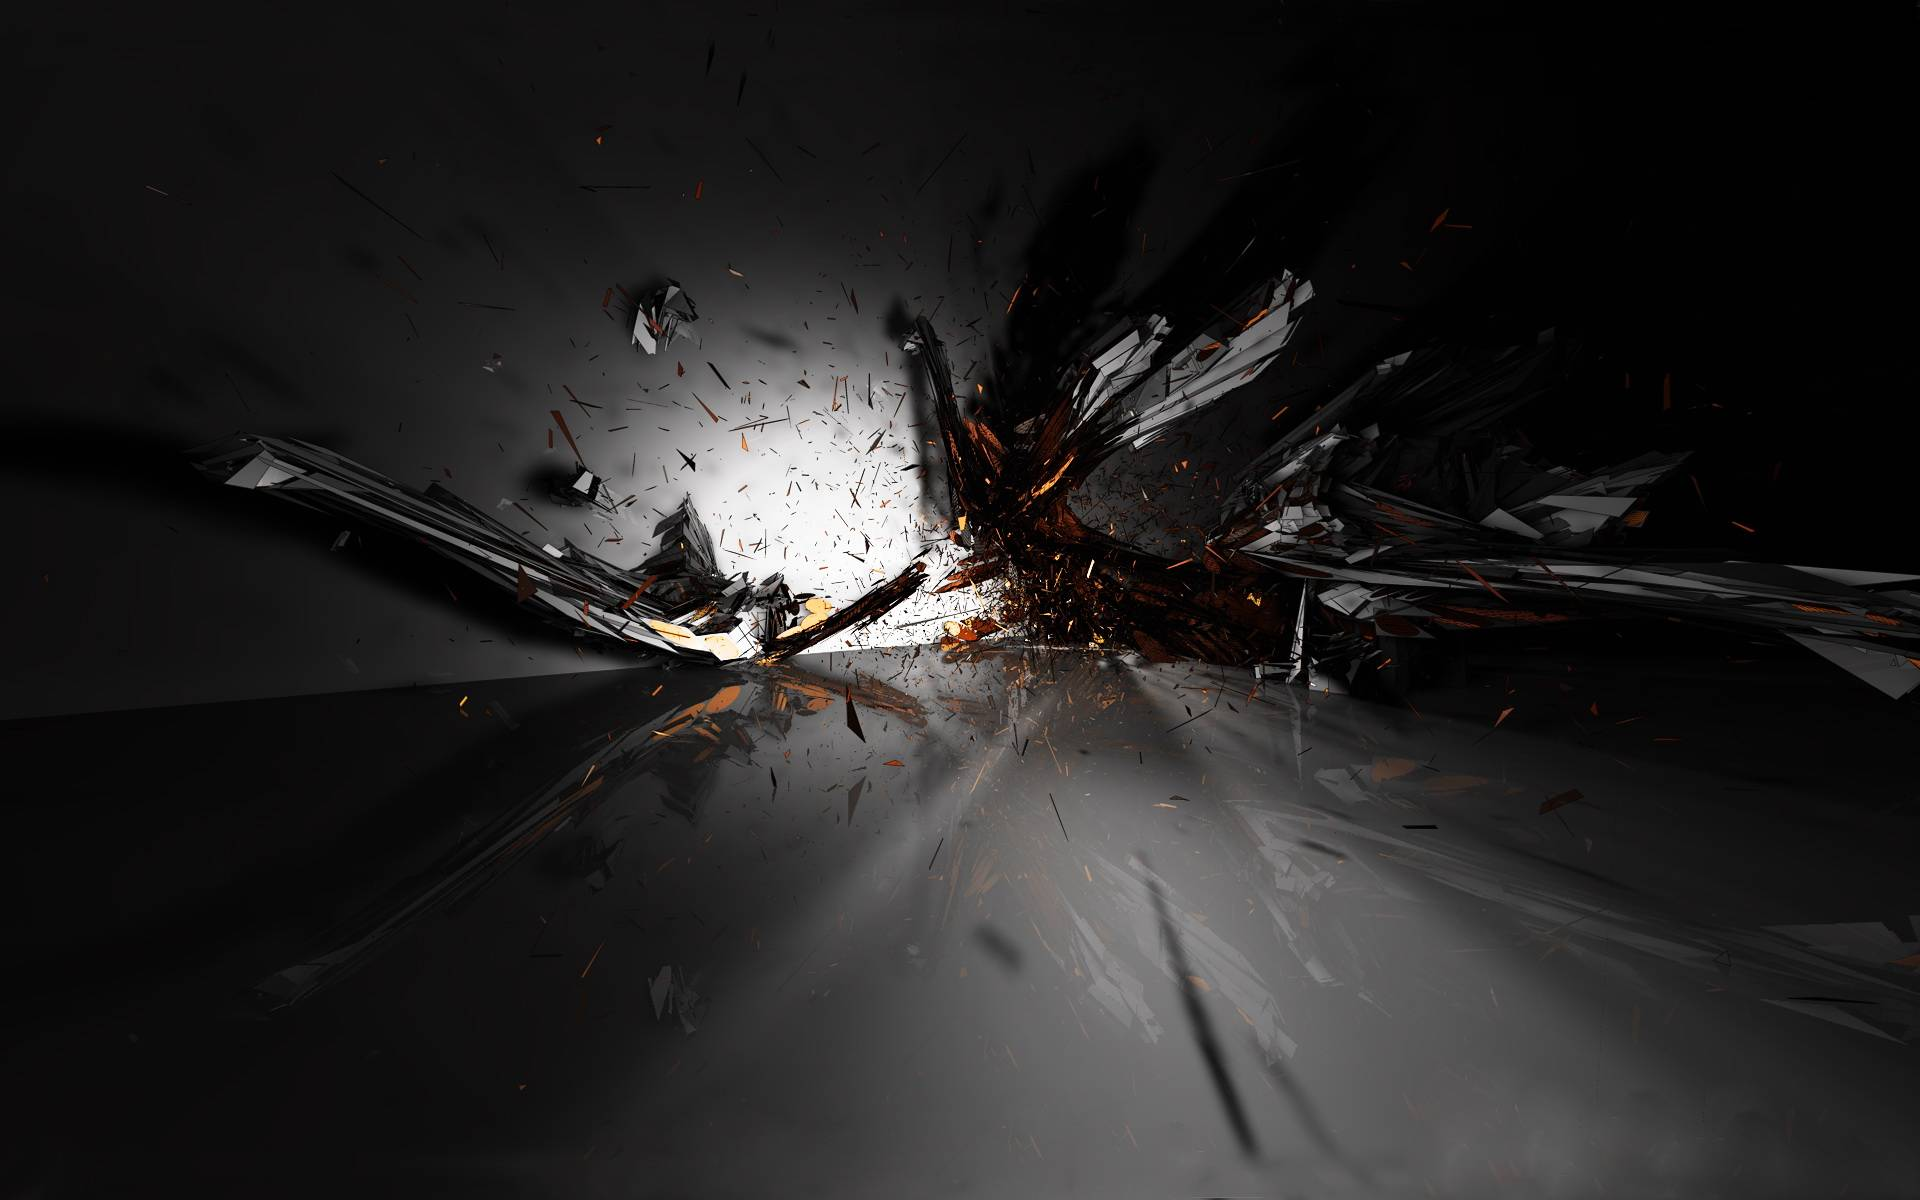 download wallpaper debris explosion - photo #17